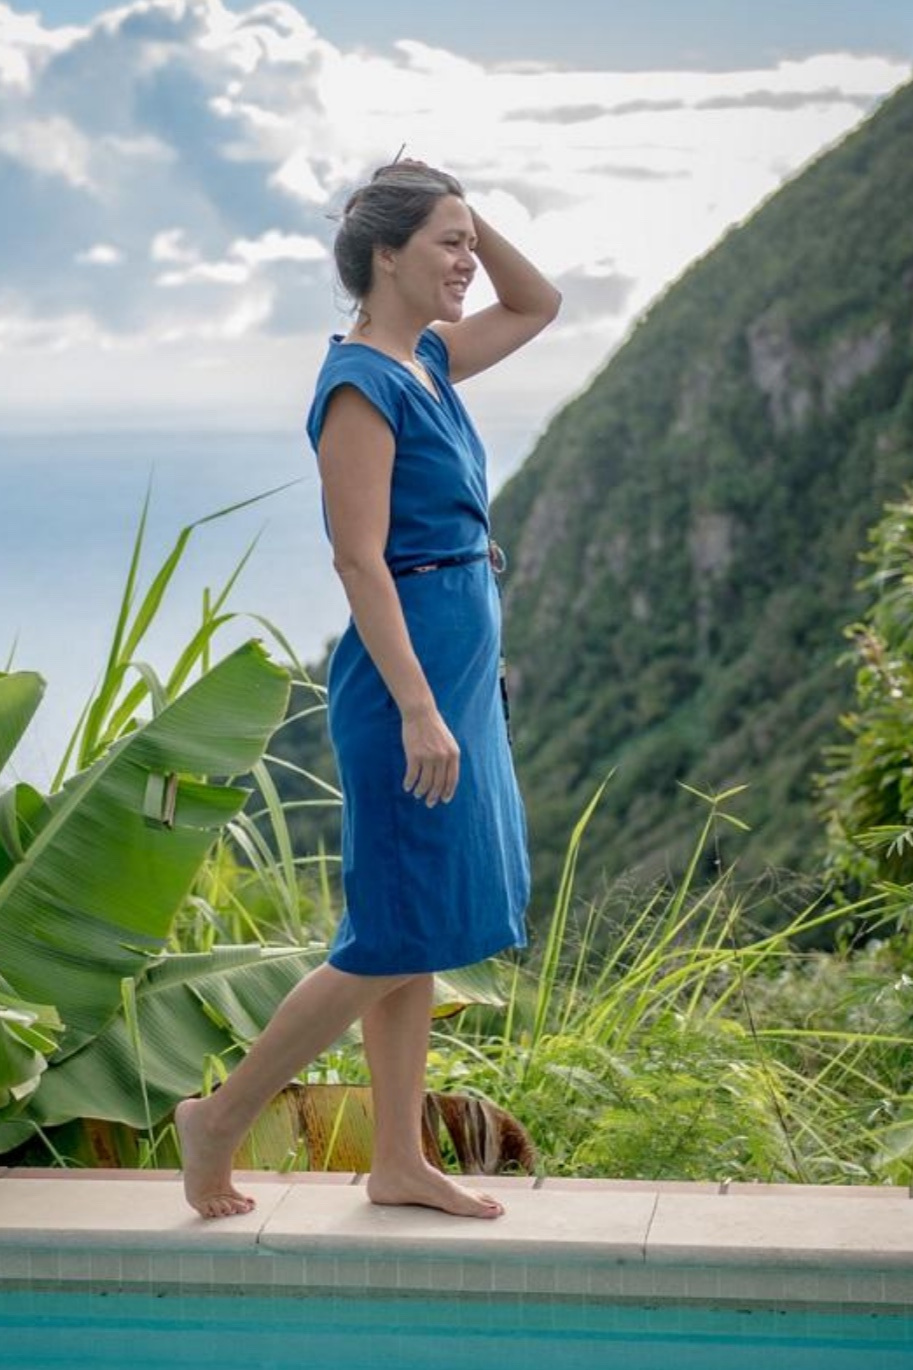 Vondel wrap dress sewing pattern from Halfmoon Atelier